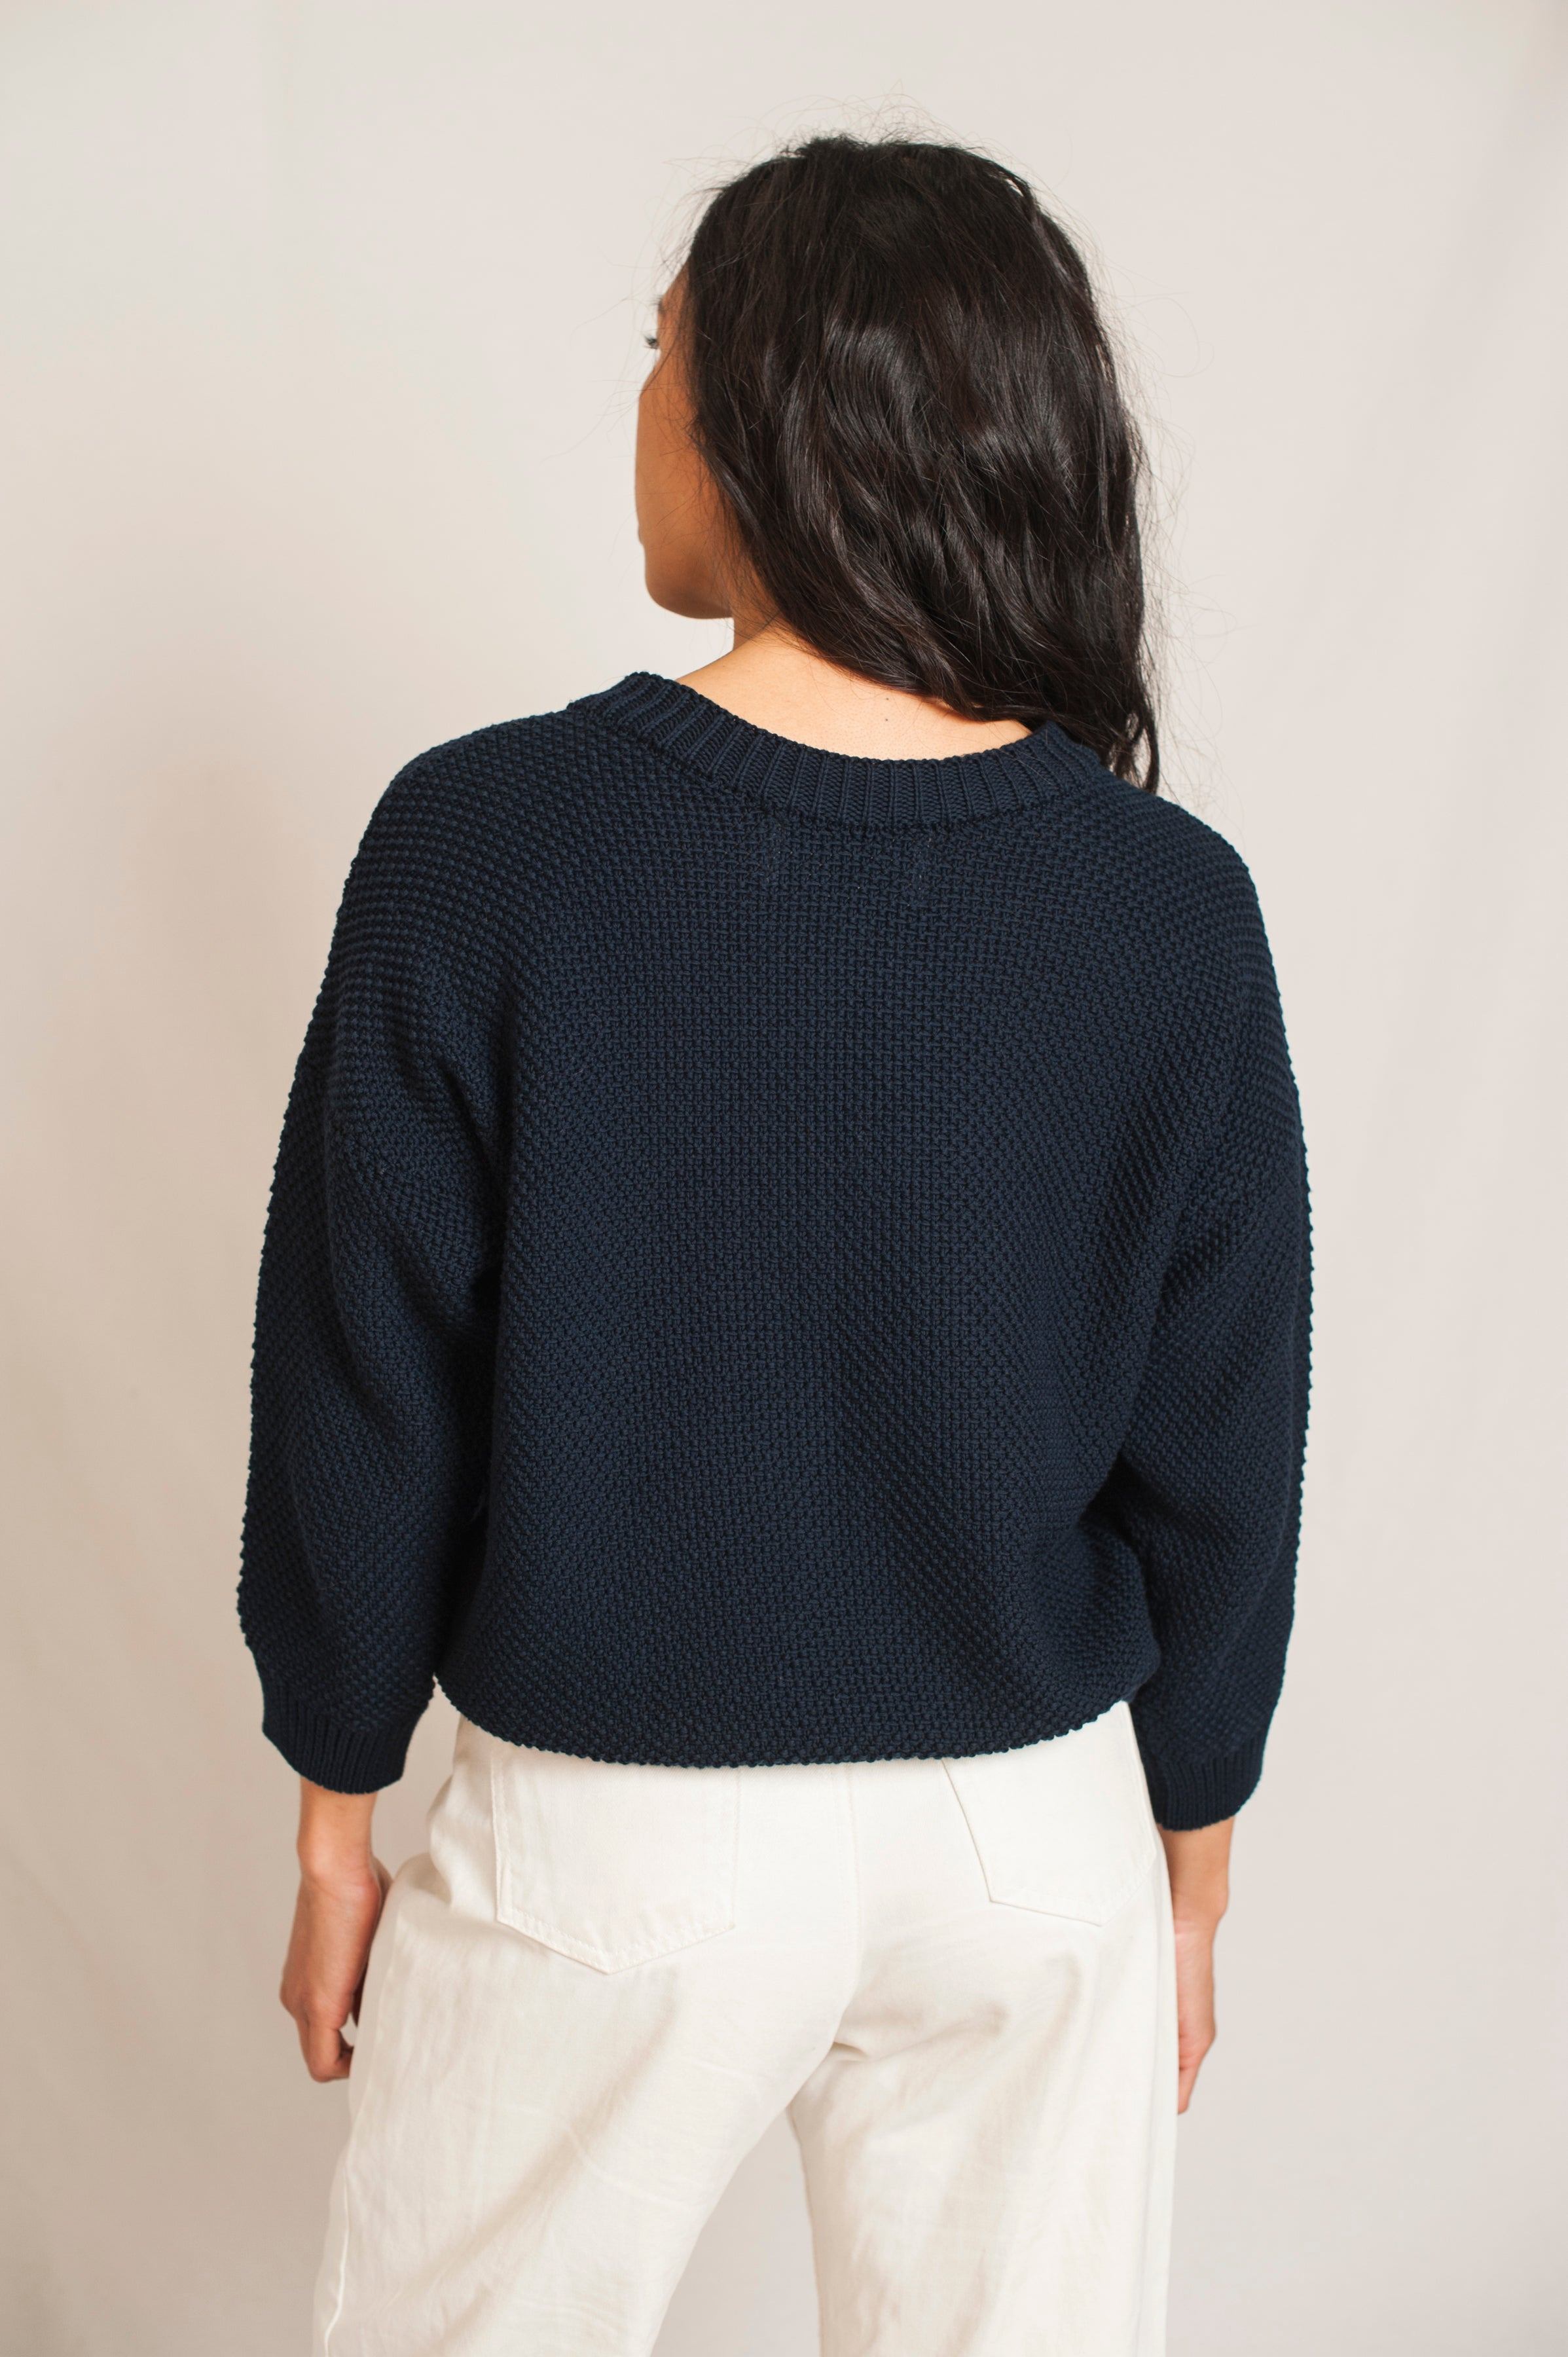 L'Envers - Séraphine Organic Cotton Cardigan - GOTS certificated - Color Navy Blue - Back Picture